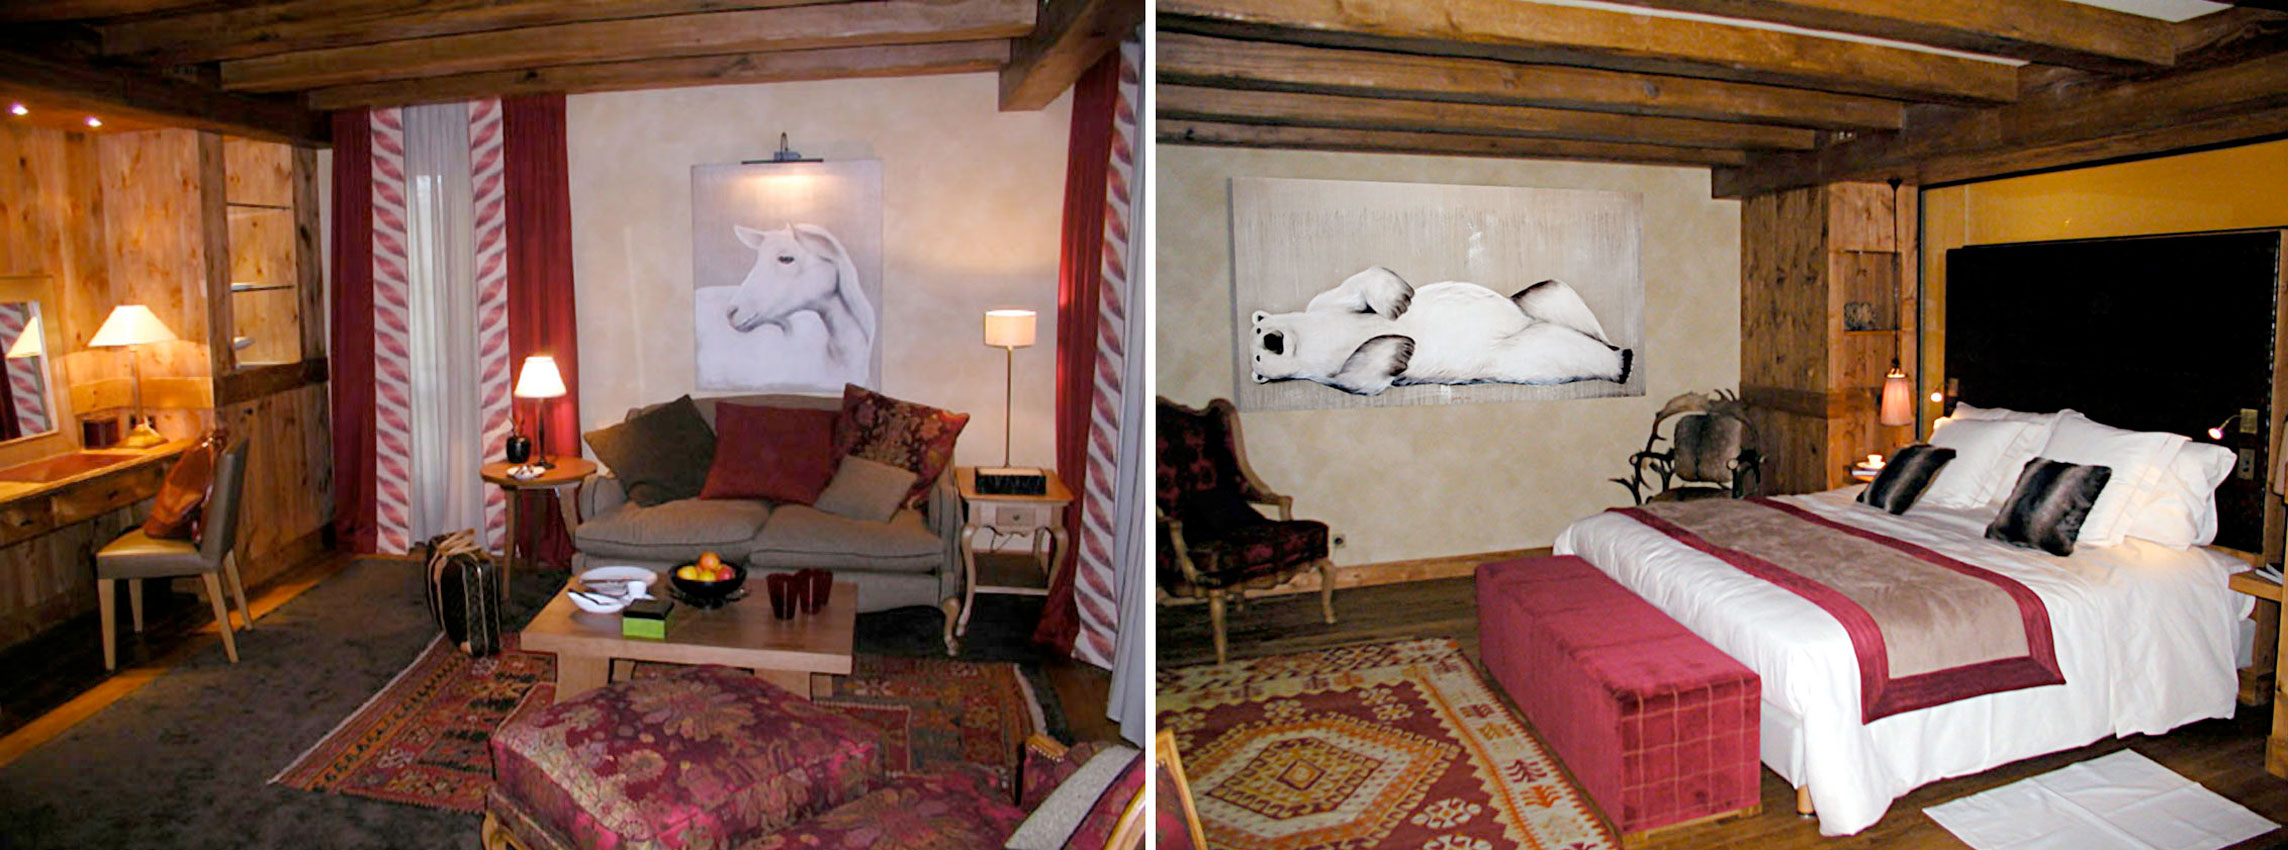 Chambre Cheval Blanc Hotel Cheval Blanc Courchevel Luxury Mountain